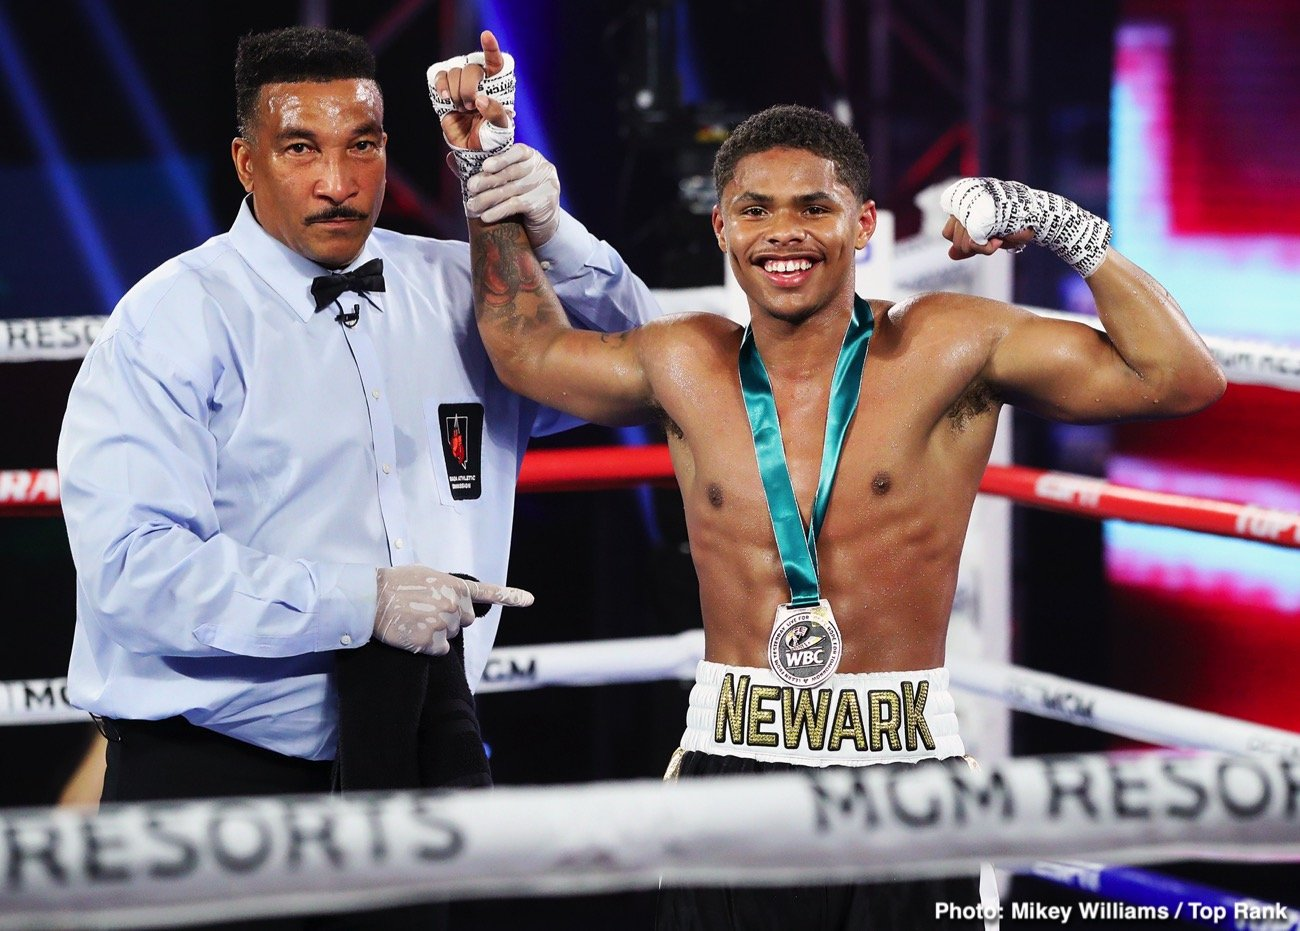 Miguel Berchelt - Shakur Stevenson has decided to stay at 130 following his victory over Felix Caraballo on June 9, and he wants to after the best in the division. At super featherweight, Stevenson is interested in facing WBC champion Miguel Berchelt according to Mike Coppinger.